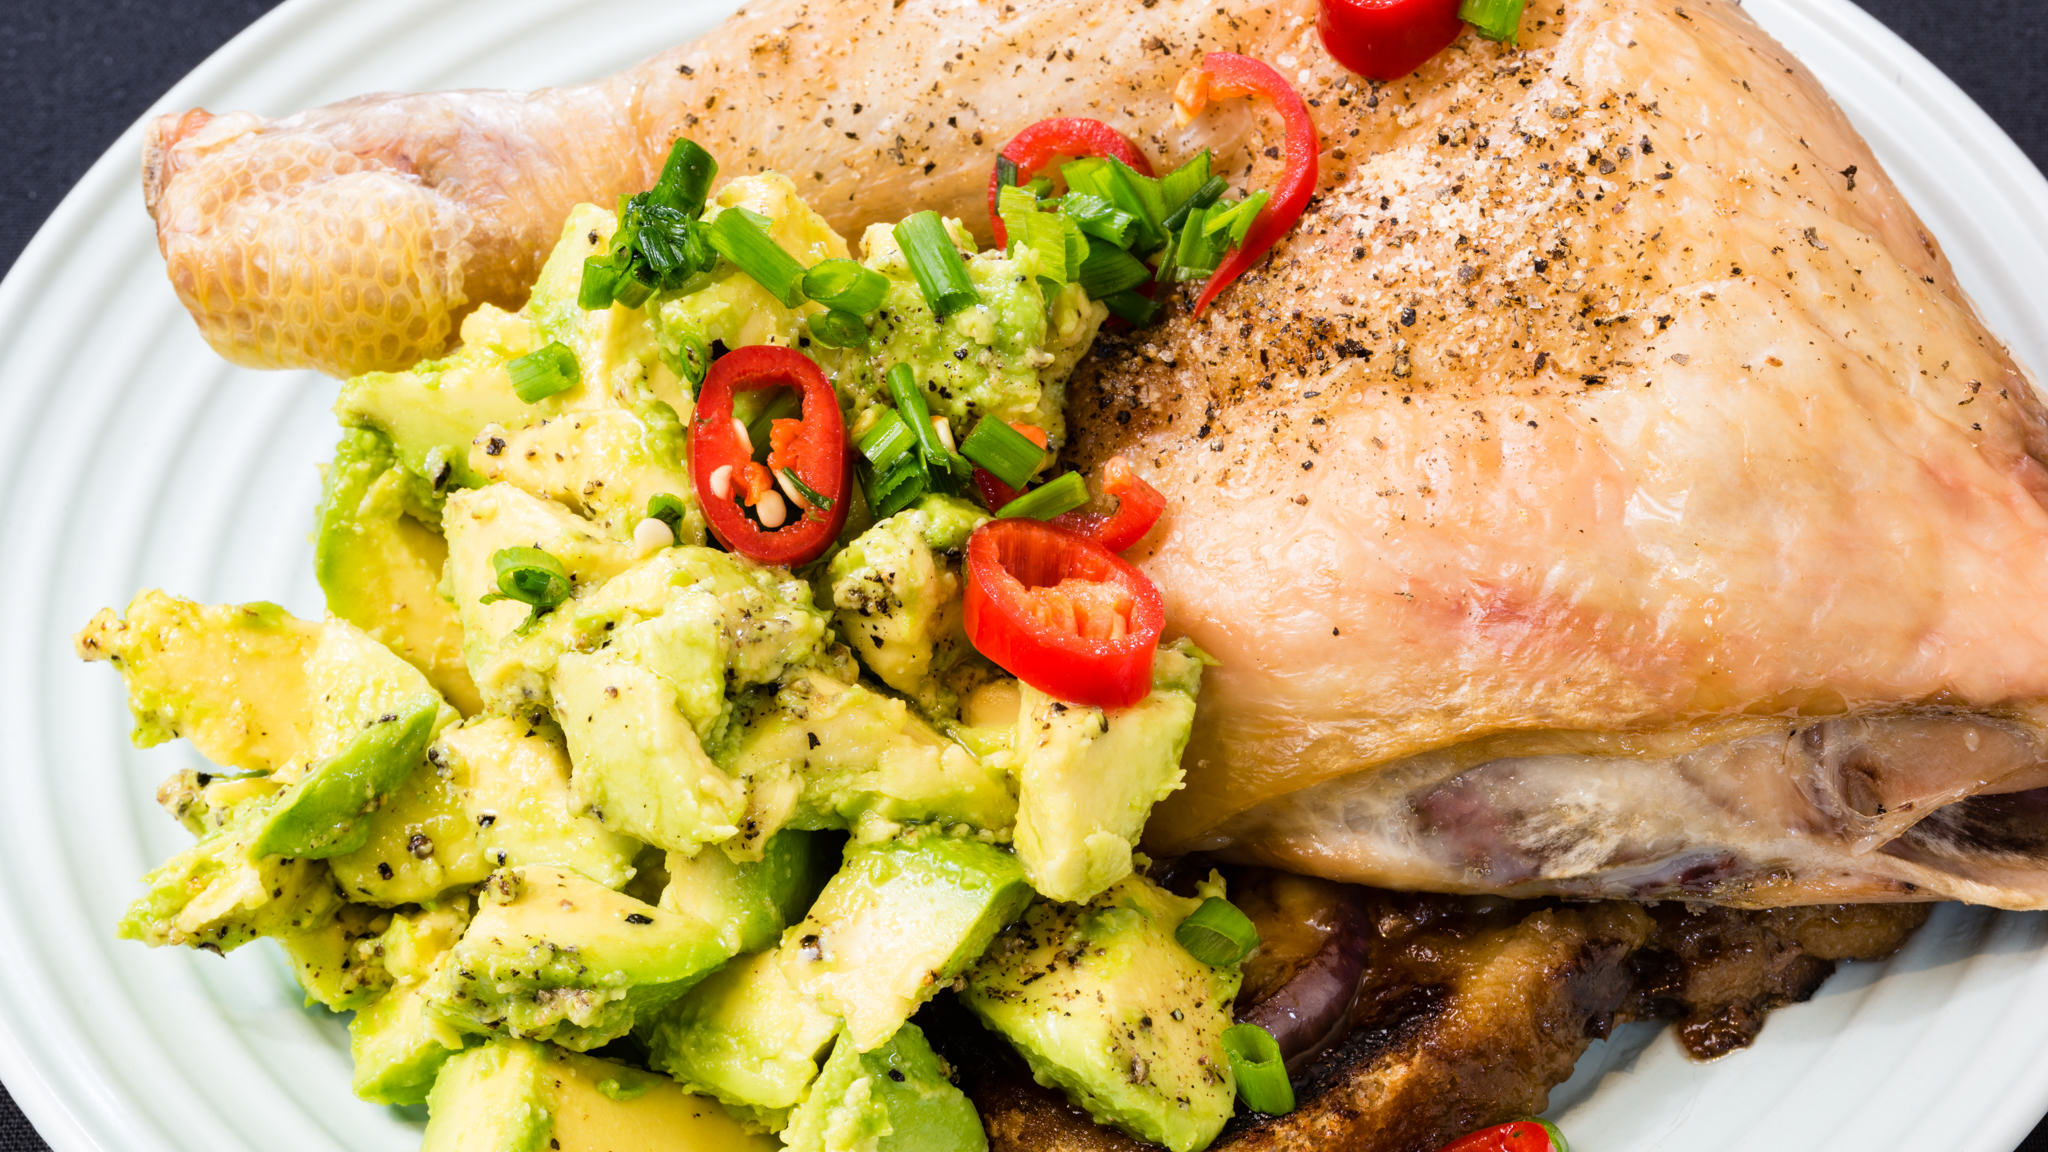 Vegemite Chicken Maryland with cheesy onion and avocado